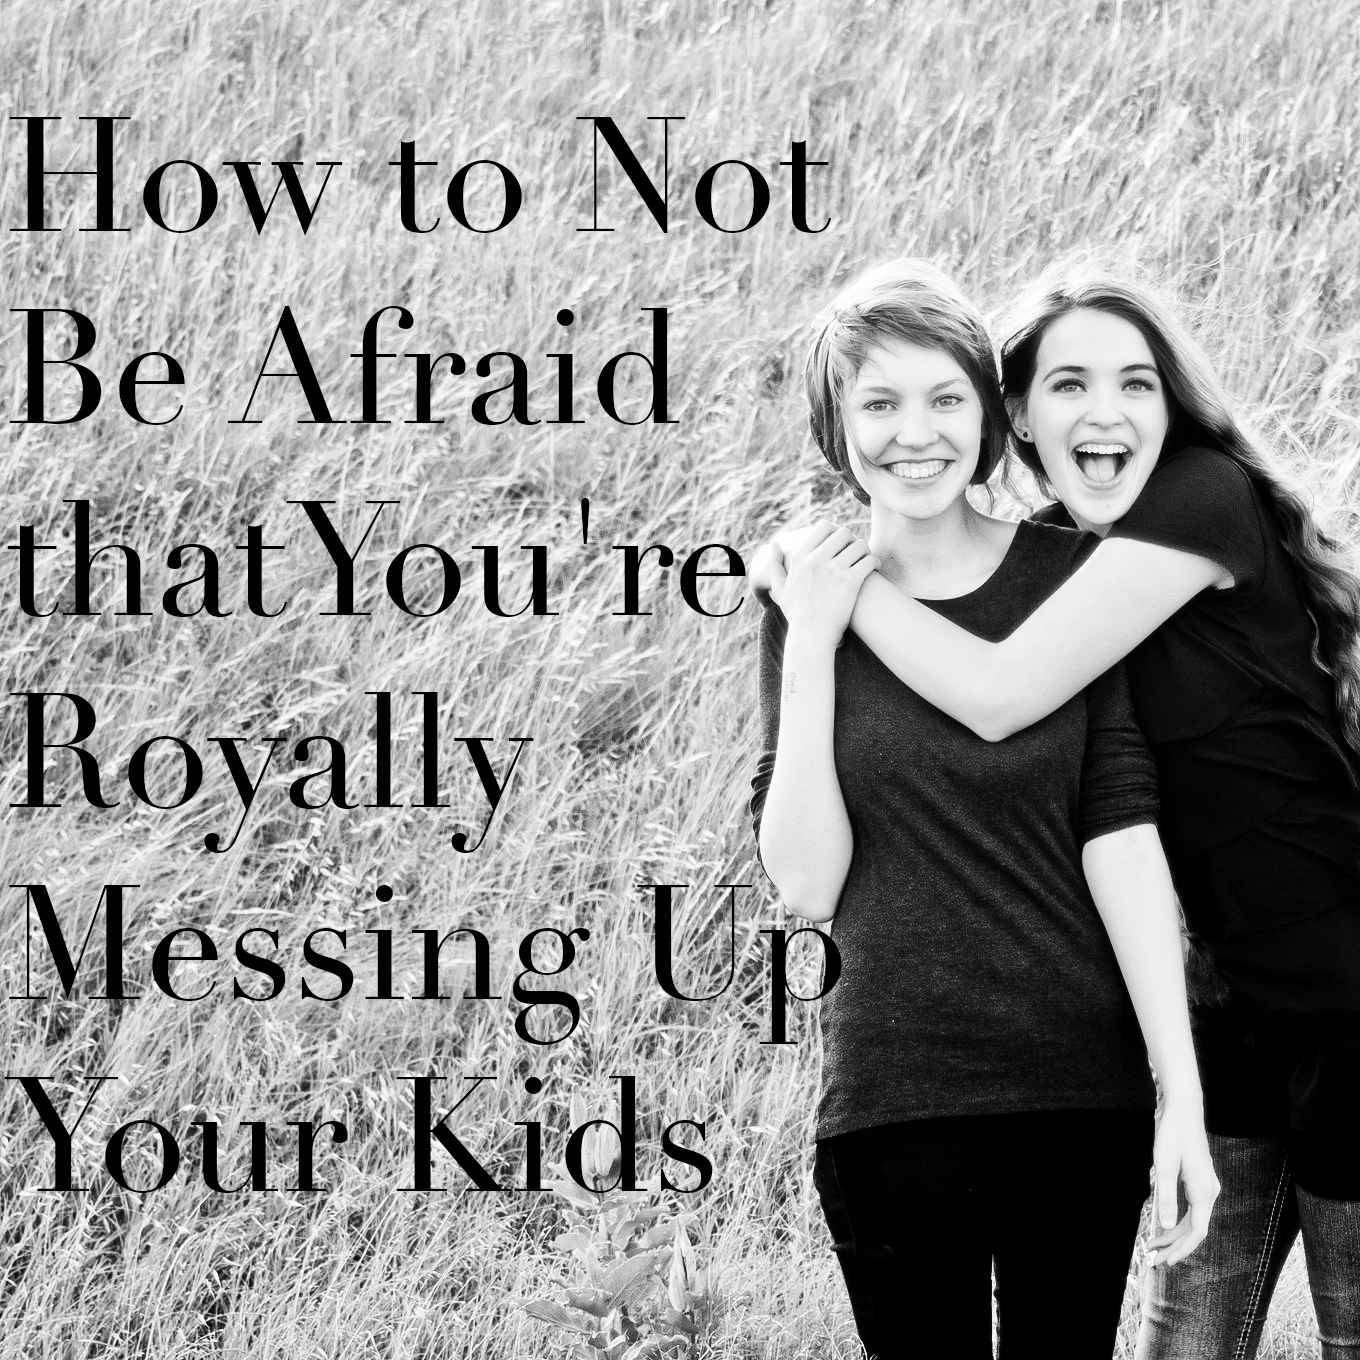 How To Not Be Afraid Of Relationships